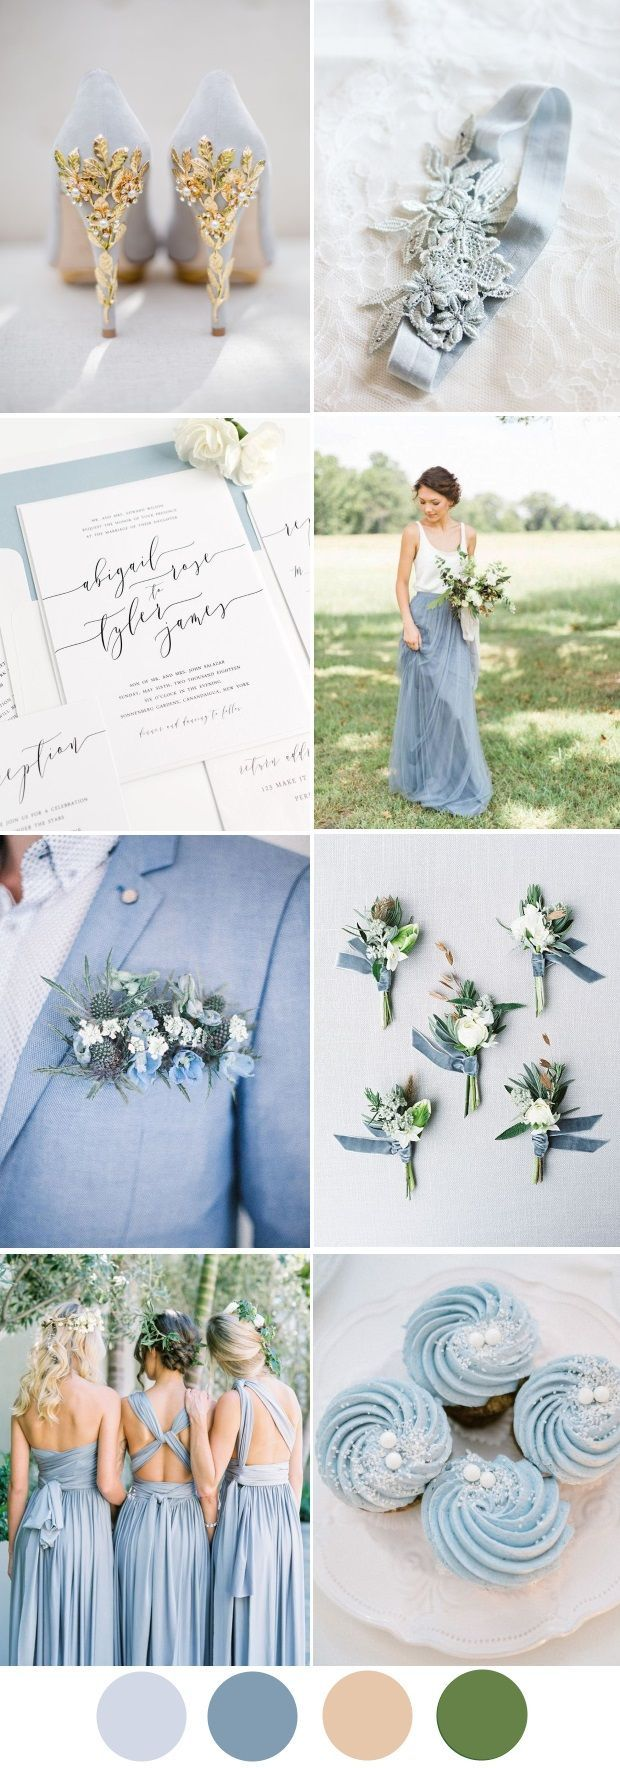 a dreamy dusty blue wedding palette that works as well for a festive winter